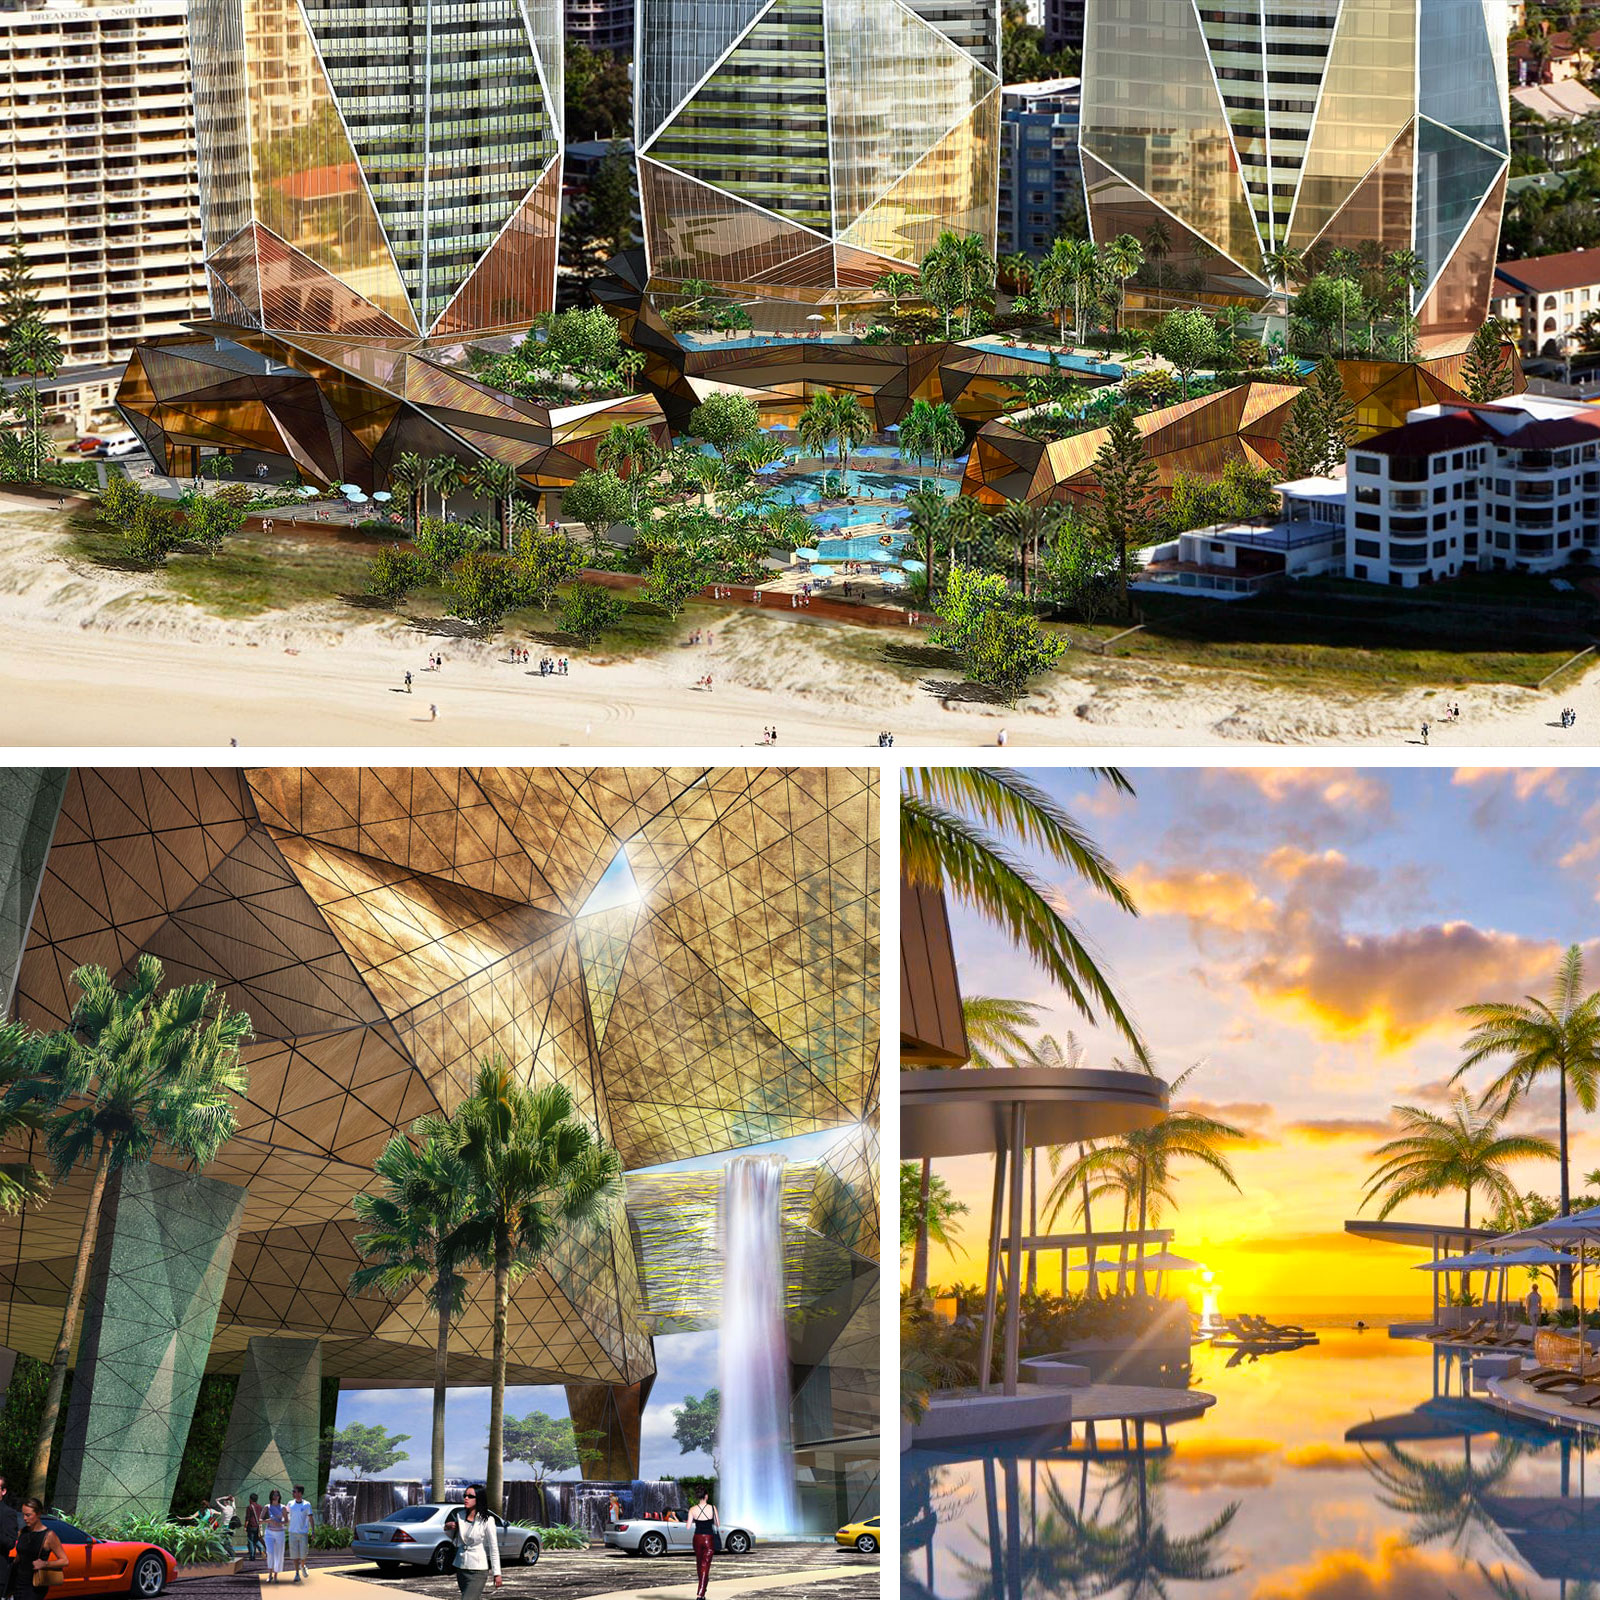 The five star hotel will be the centrepiece of tower two and feature a beach-side resort pool. The three Jewel towers will incorporate a selection of one, two, three and four-bedroom private residences.